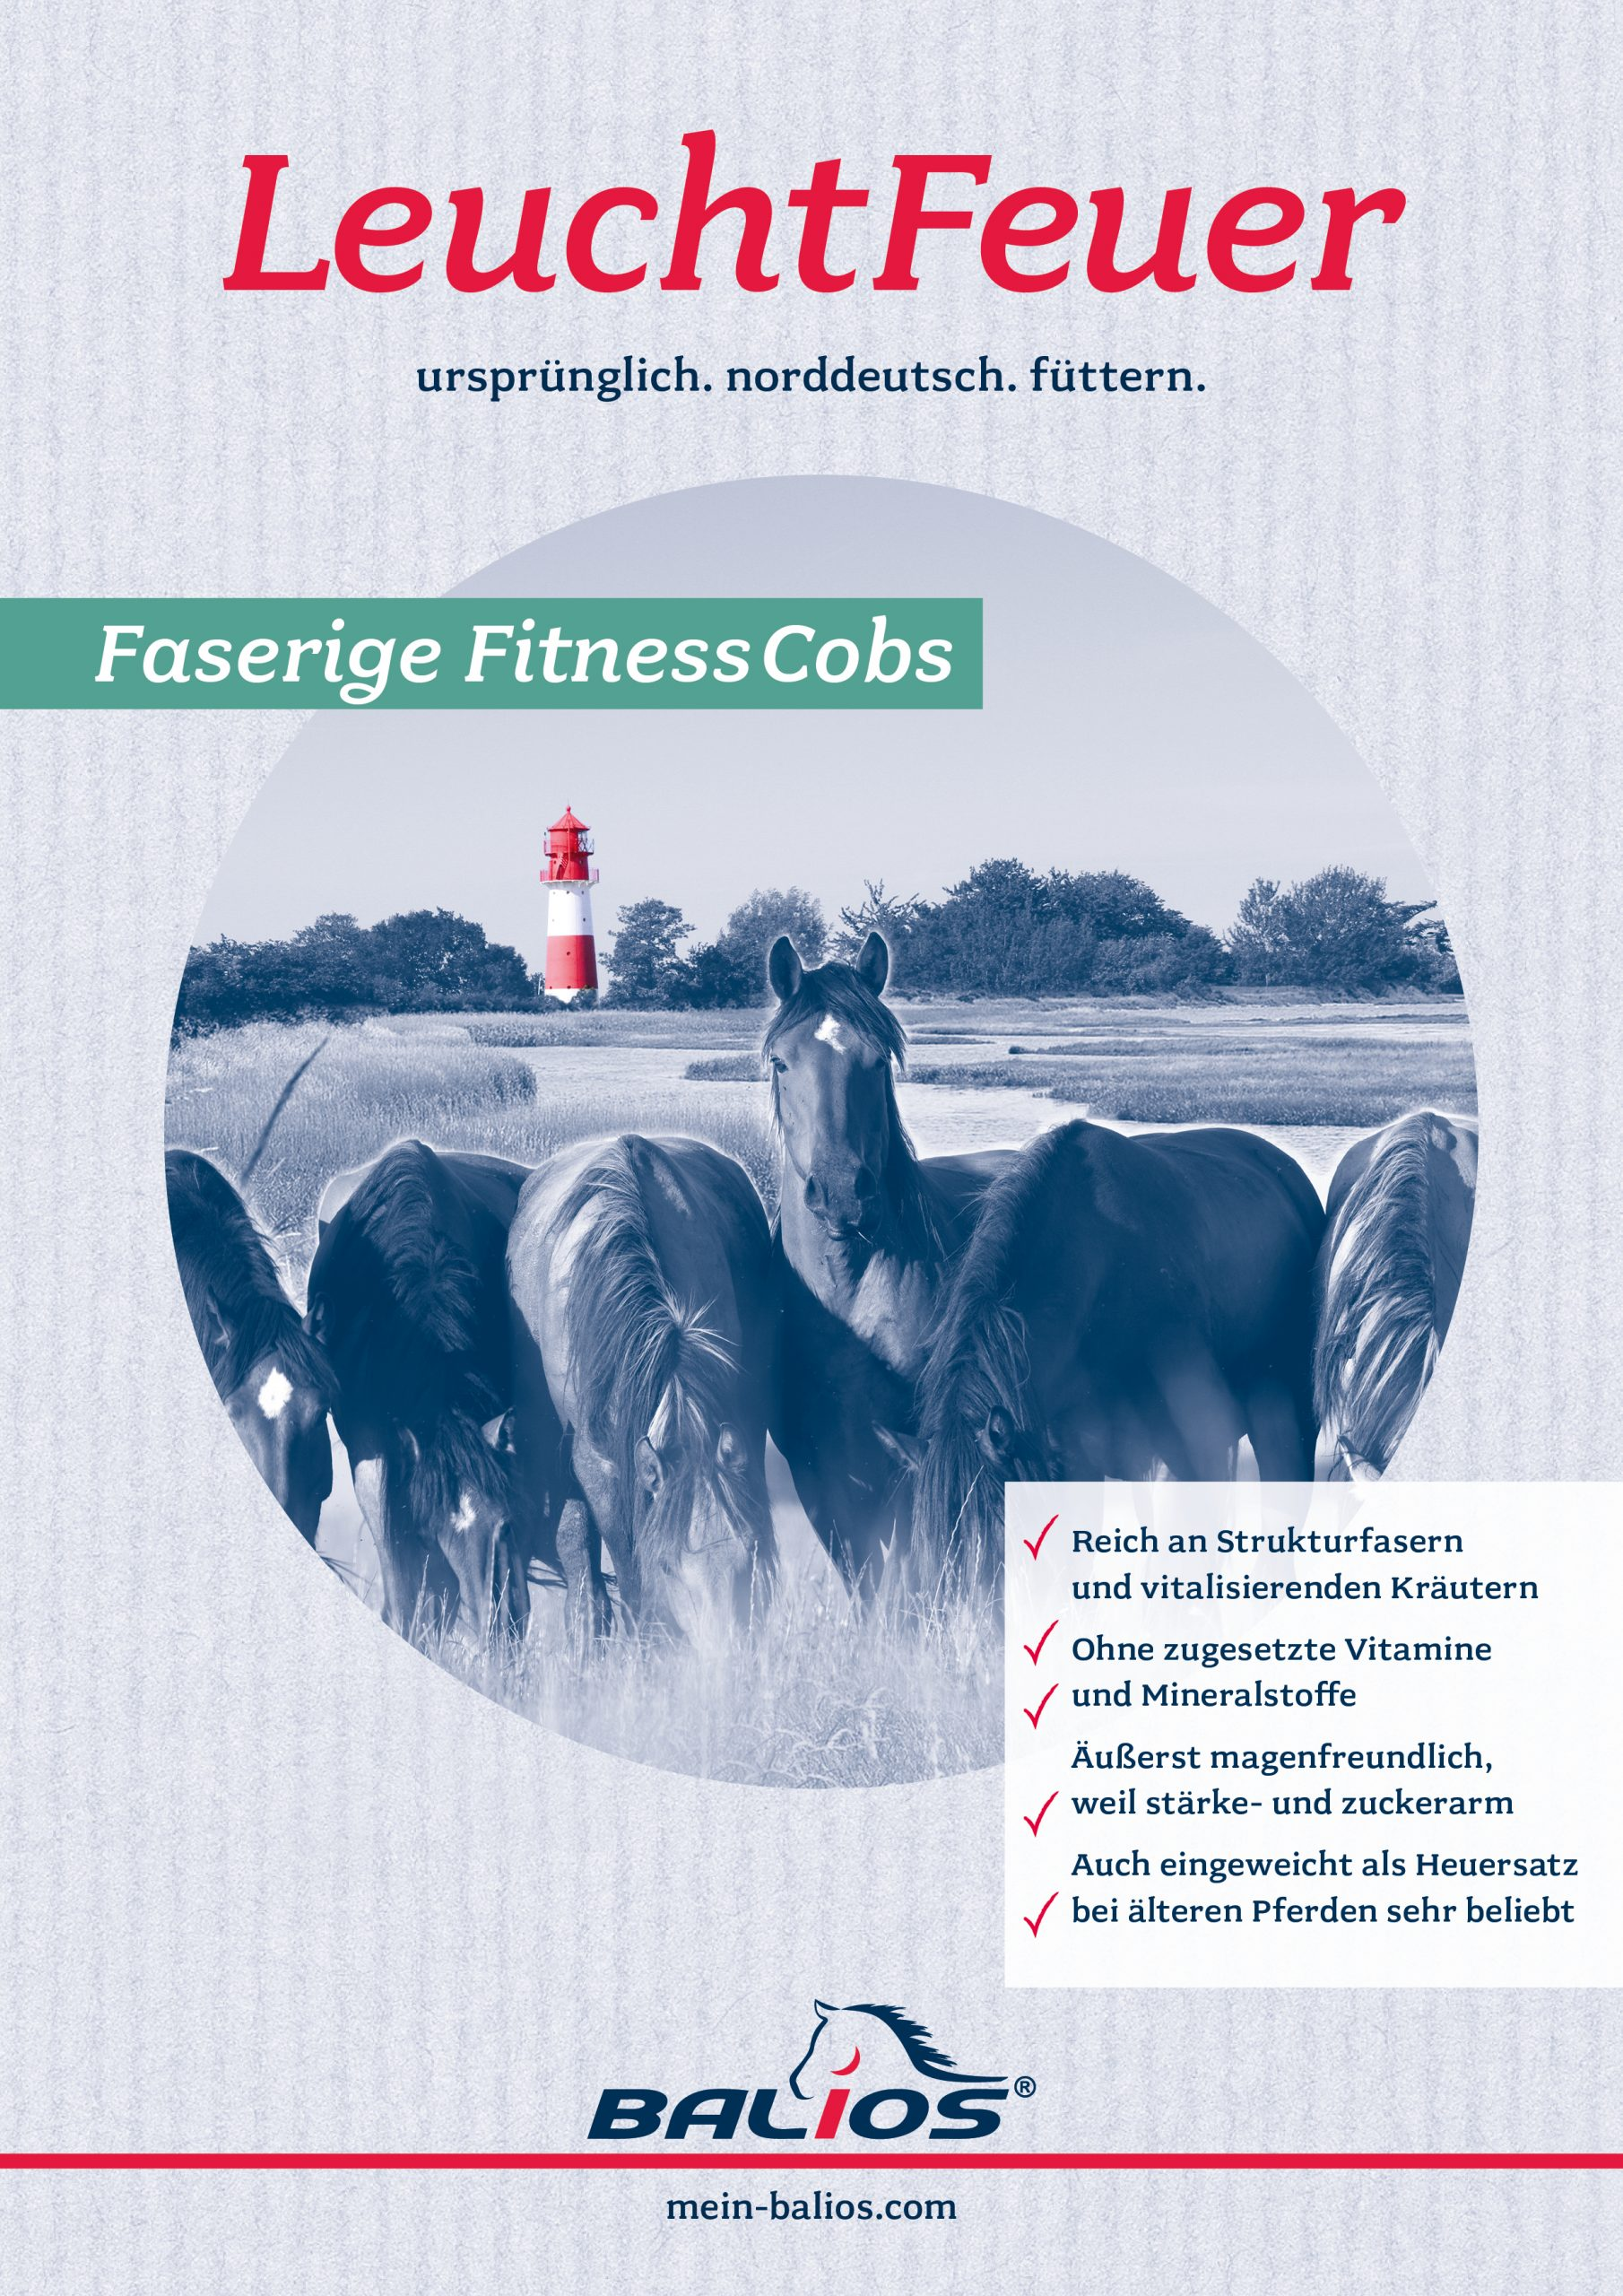 BALIOS LeuchtFeuer Faserige FitnessCobs